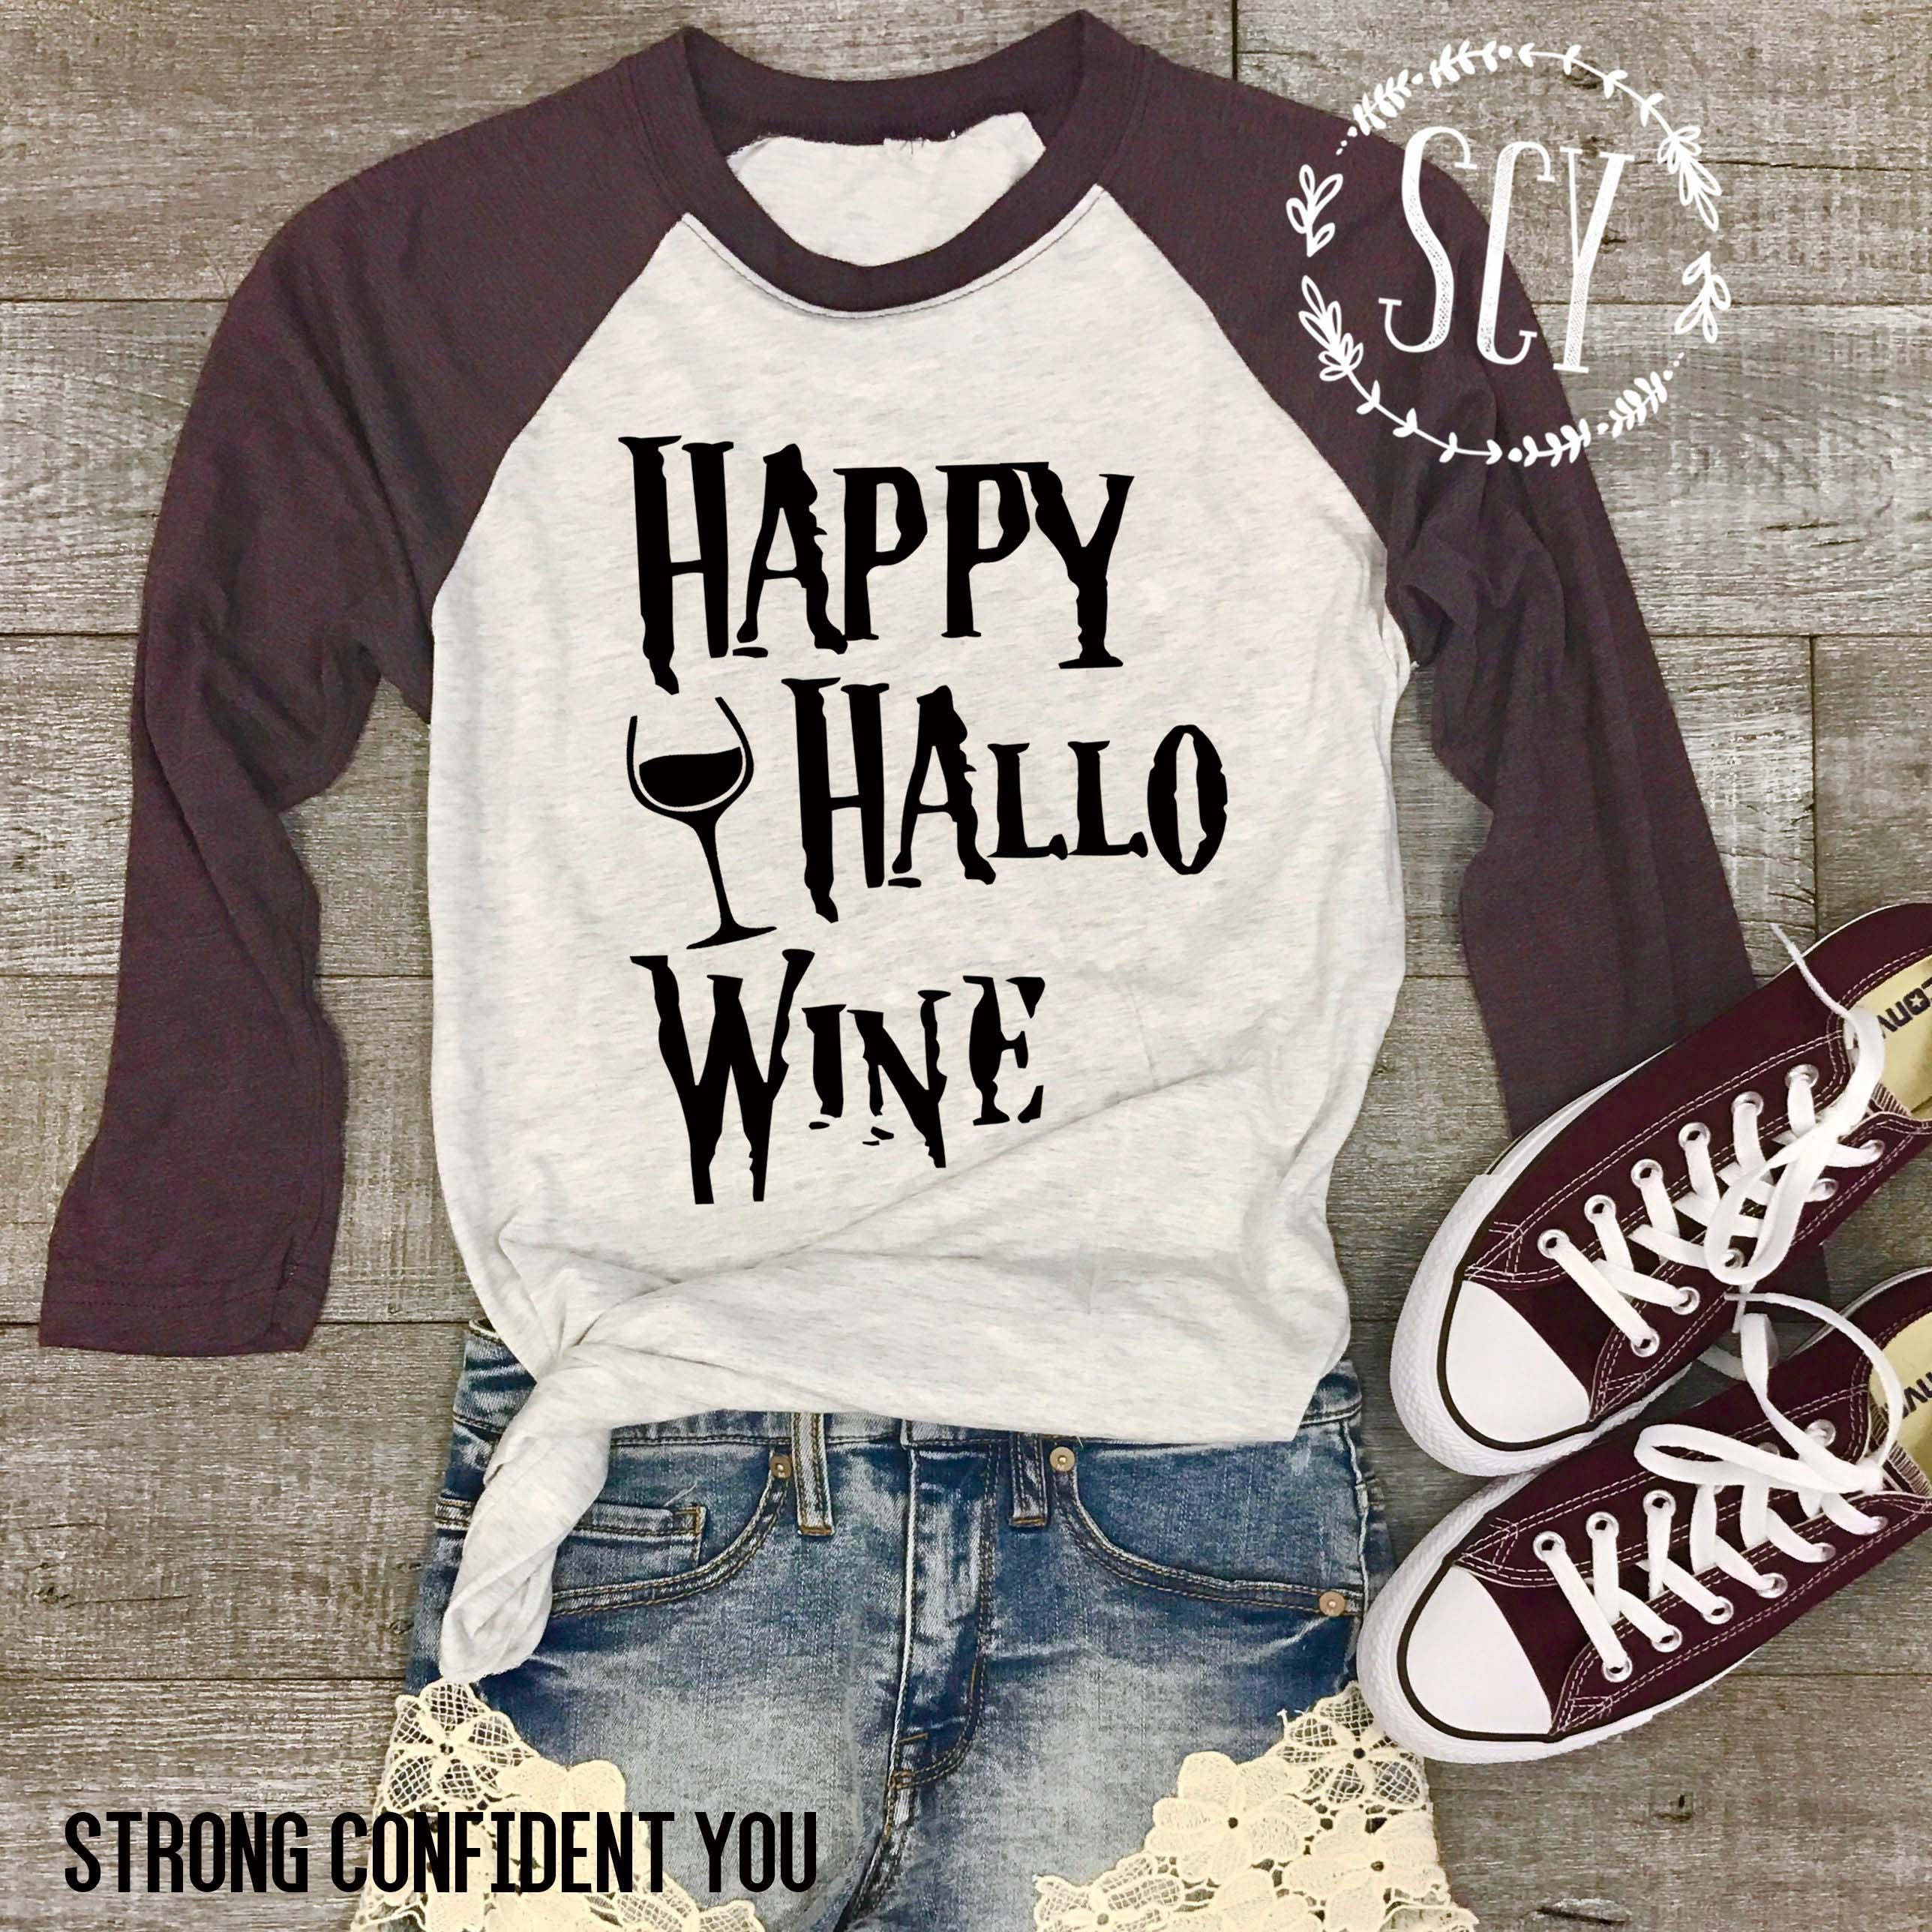 Happy Hallo Wine Baseball Style Shirt - Halloween Baseball Shirt - Wine Baseball Shirt - Merlot - Burgundy - Funny Halloween Tee